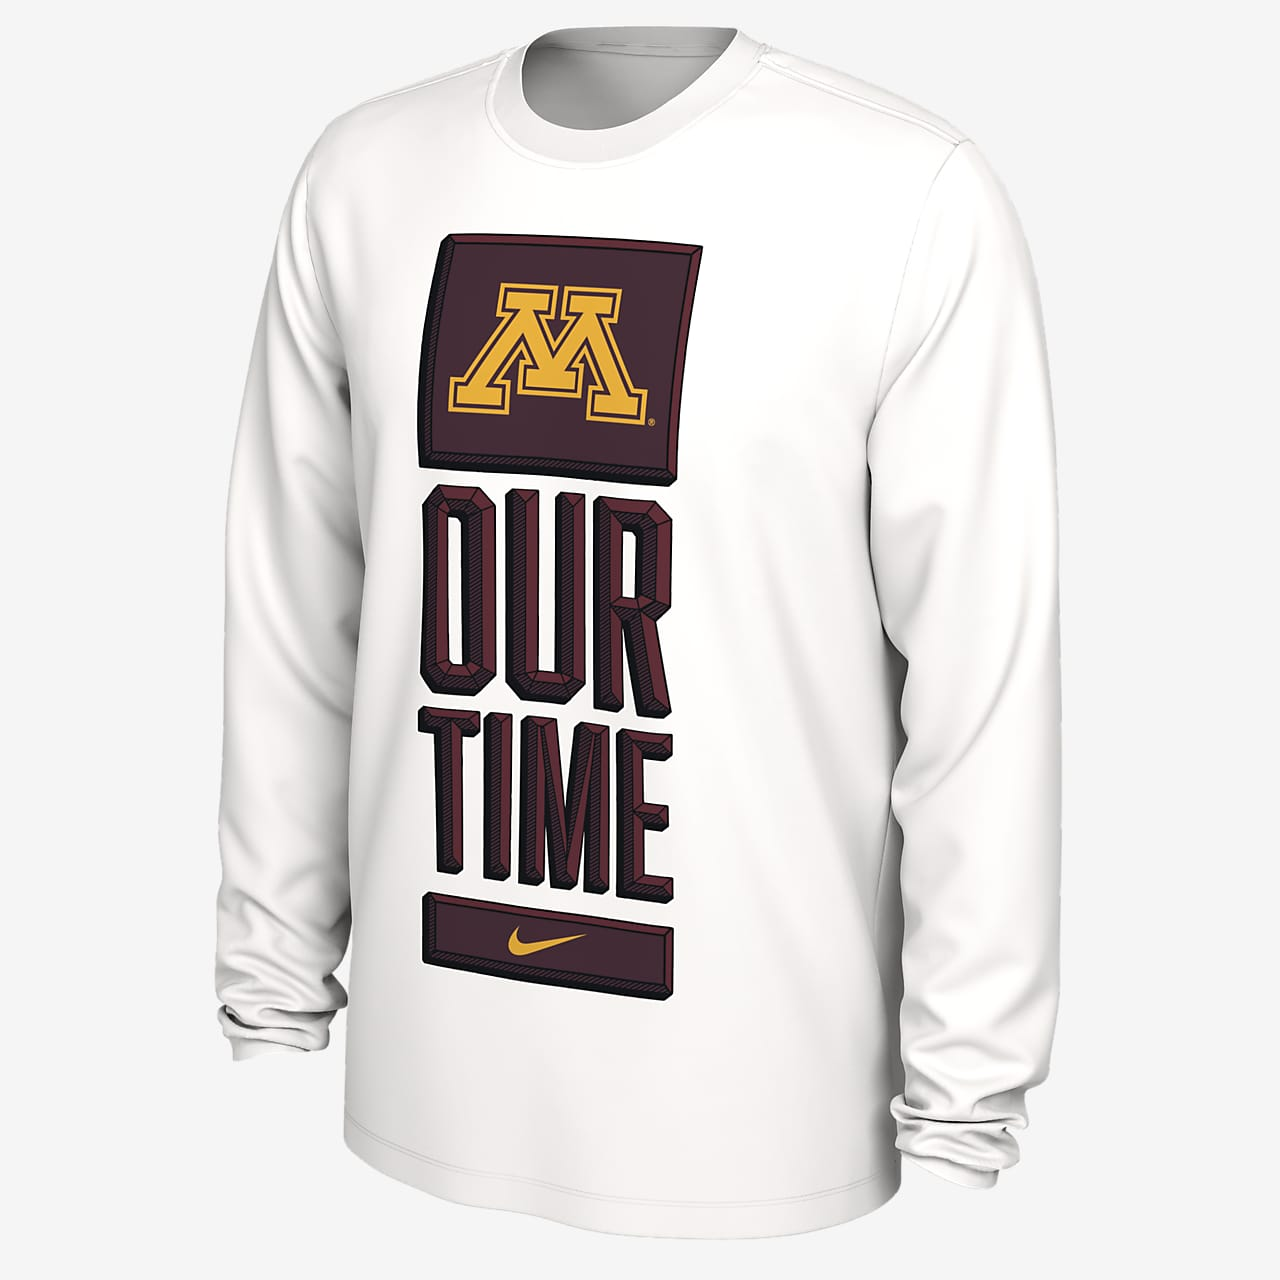 Nike College Dri-FIT (Minnesota) Men's Long-Sleeve T-Shirt